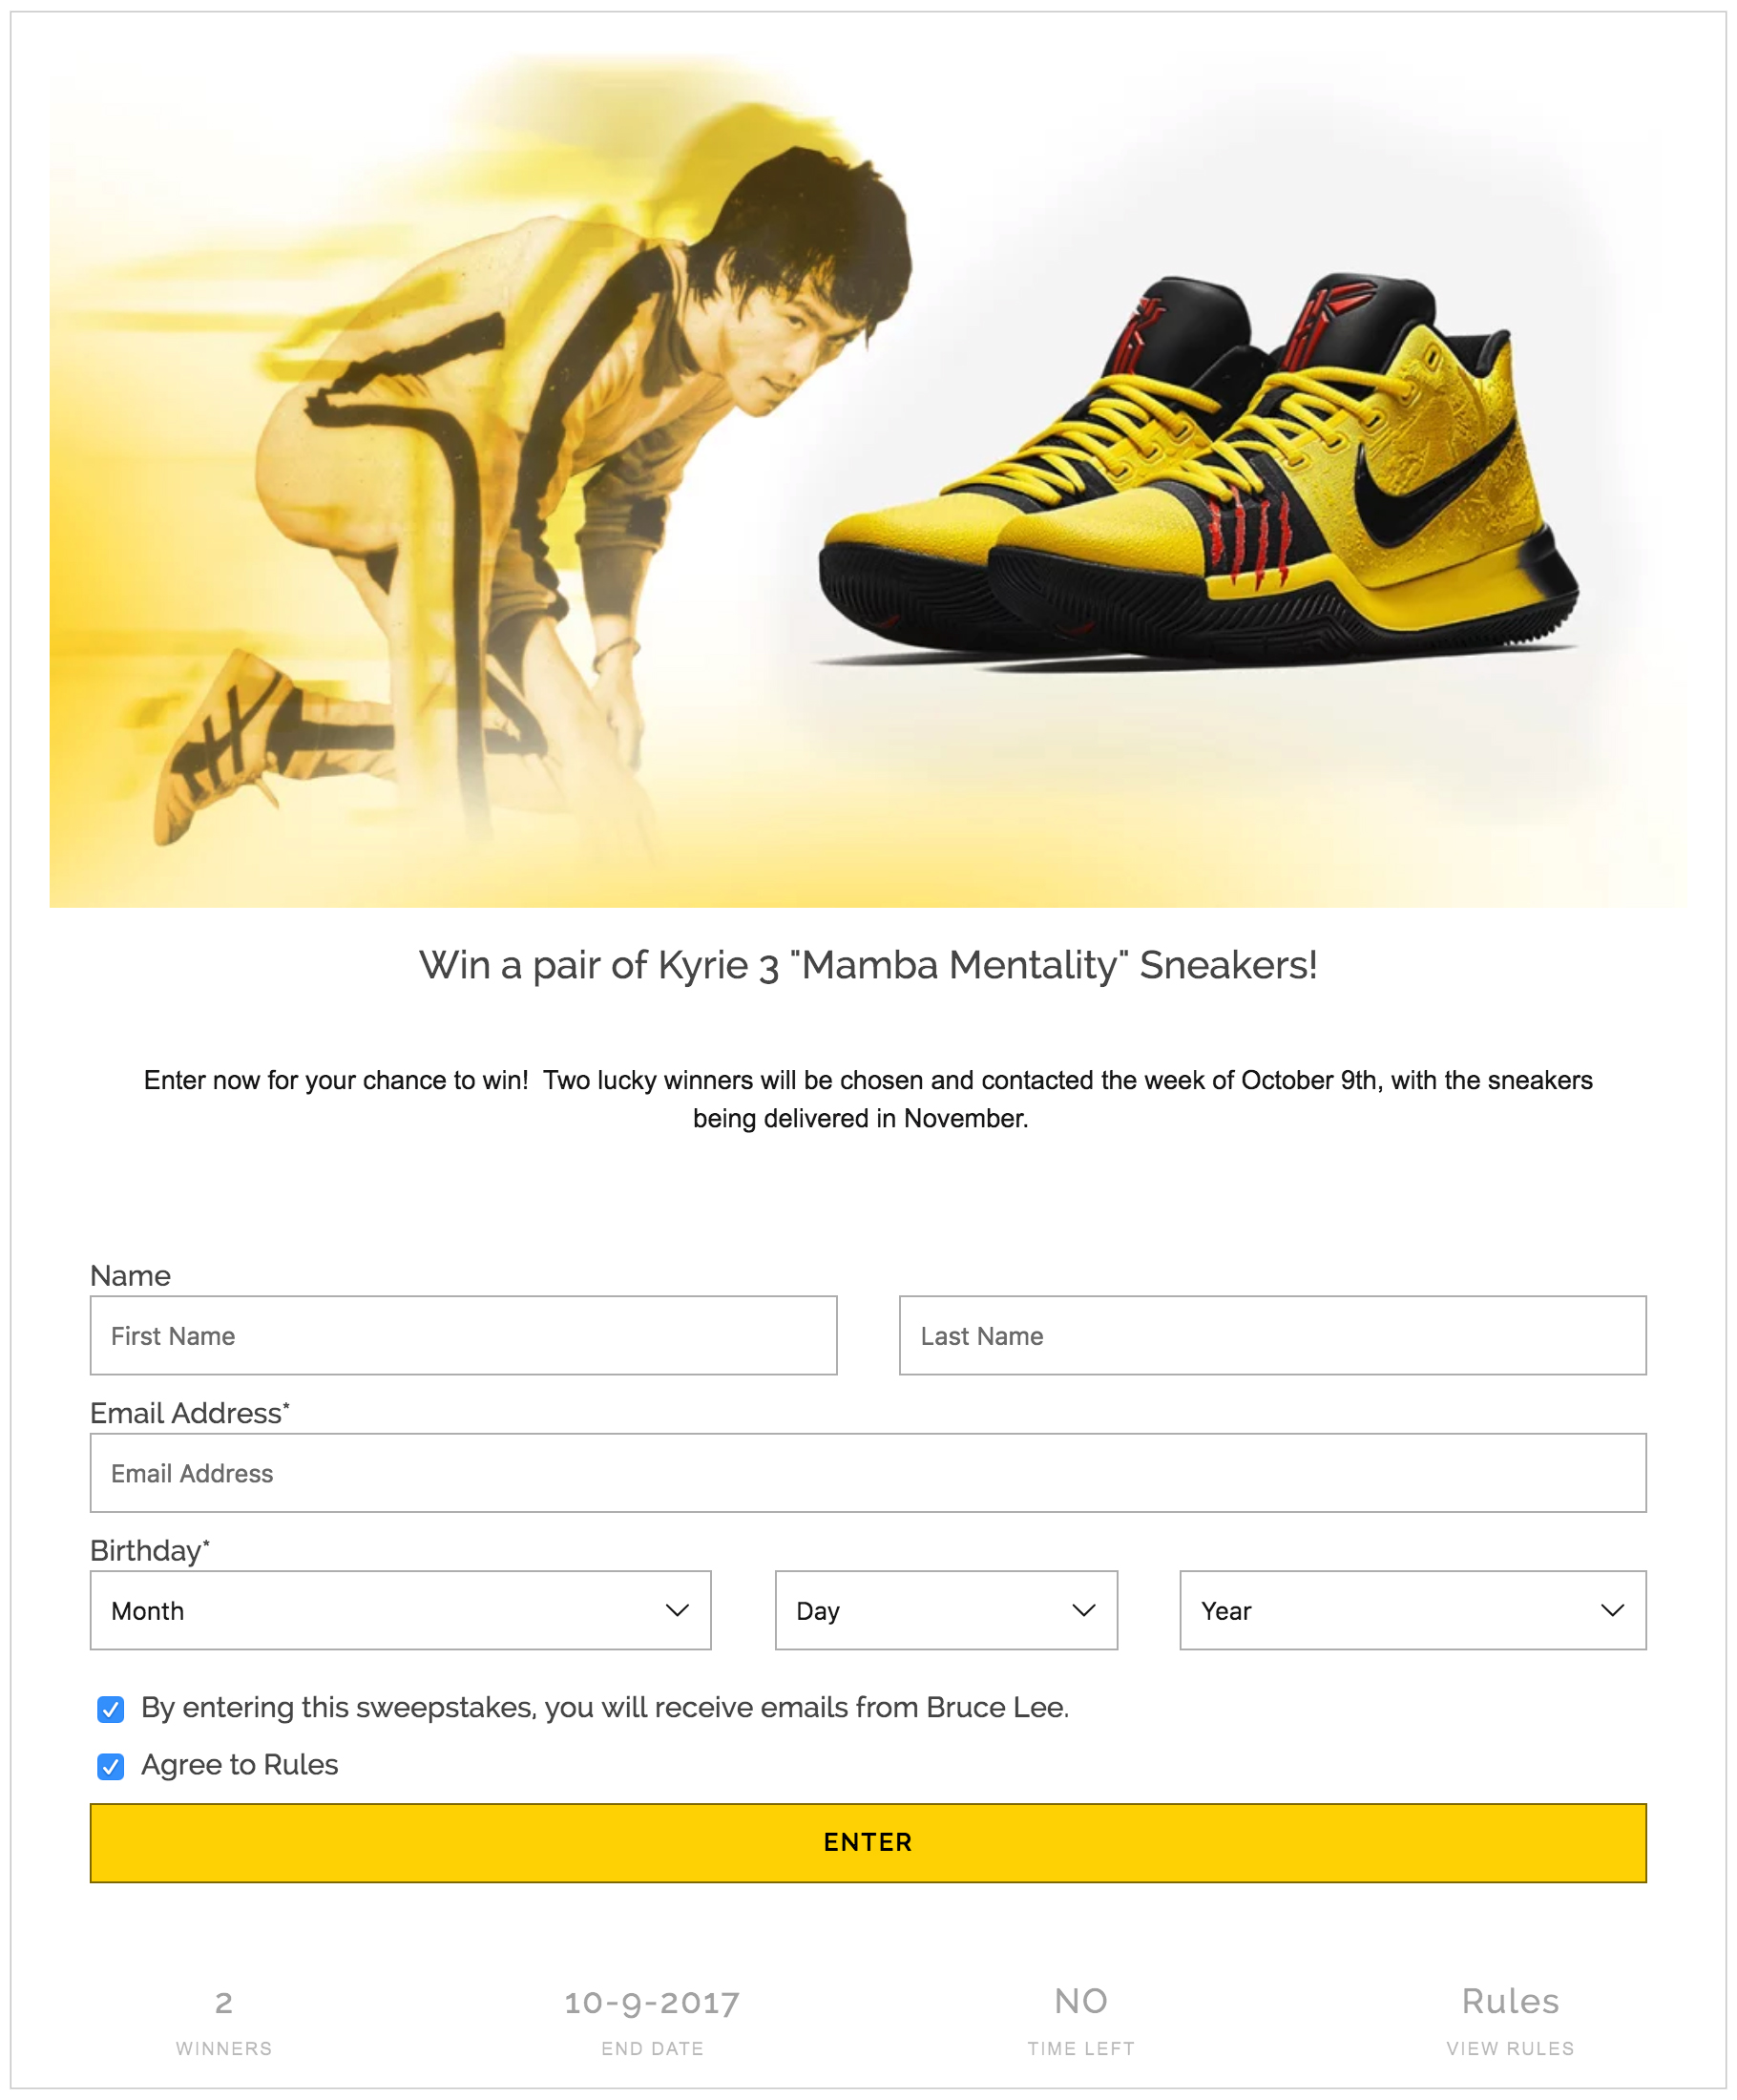 bruce lee insiders free giveaway